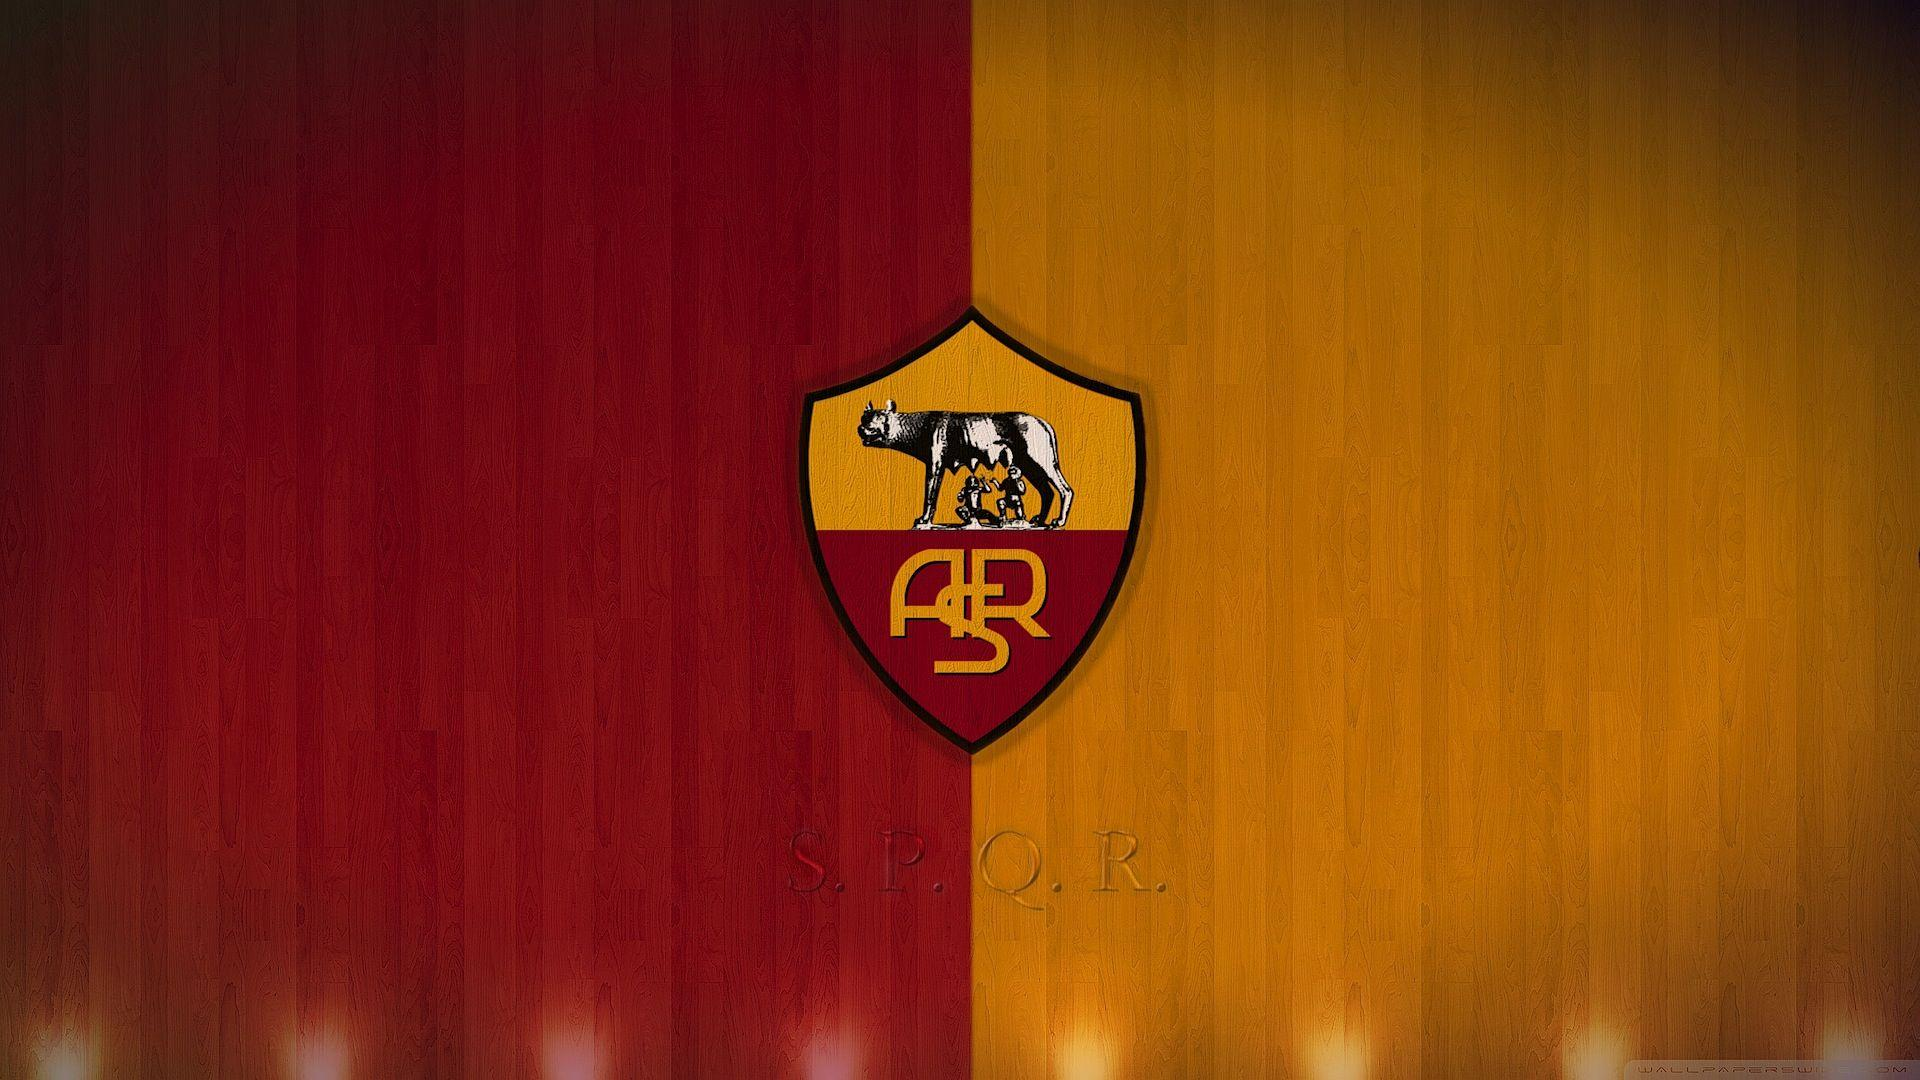 AS Roma Wallpapers - Top Free AS Roma Backgrounds - WallpaperAccess